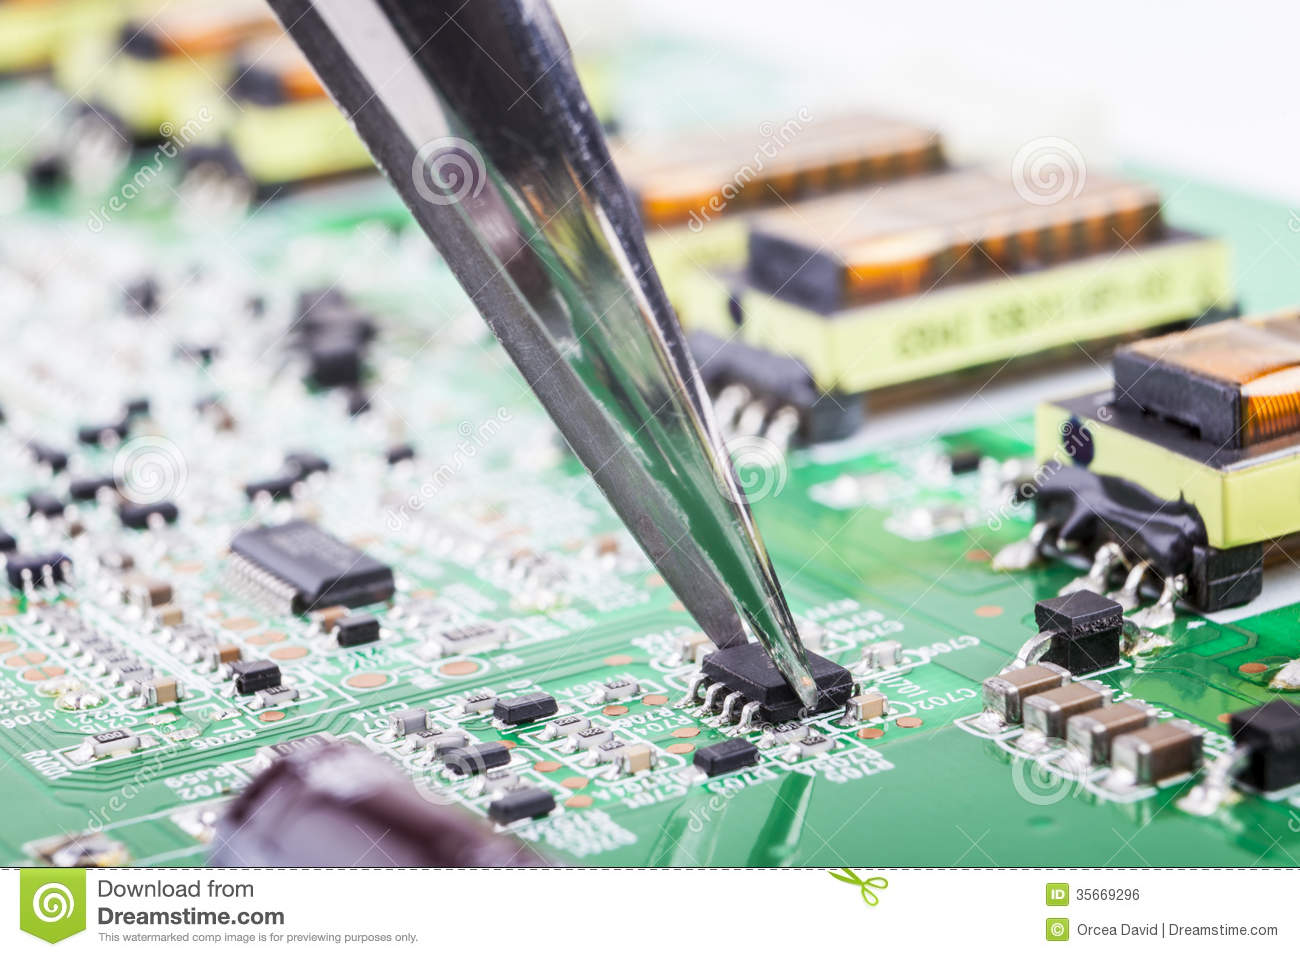 Electronic Component Royalty Free Stock Image  Image  35669296